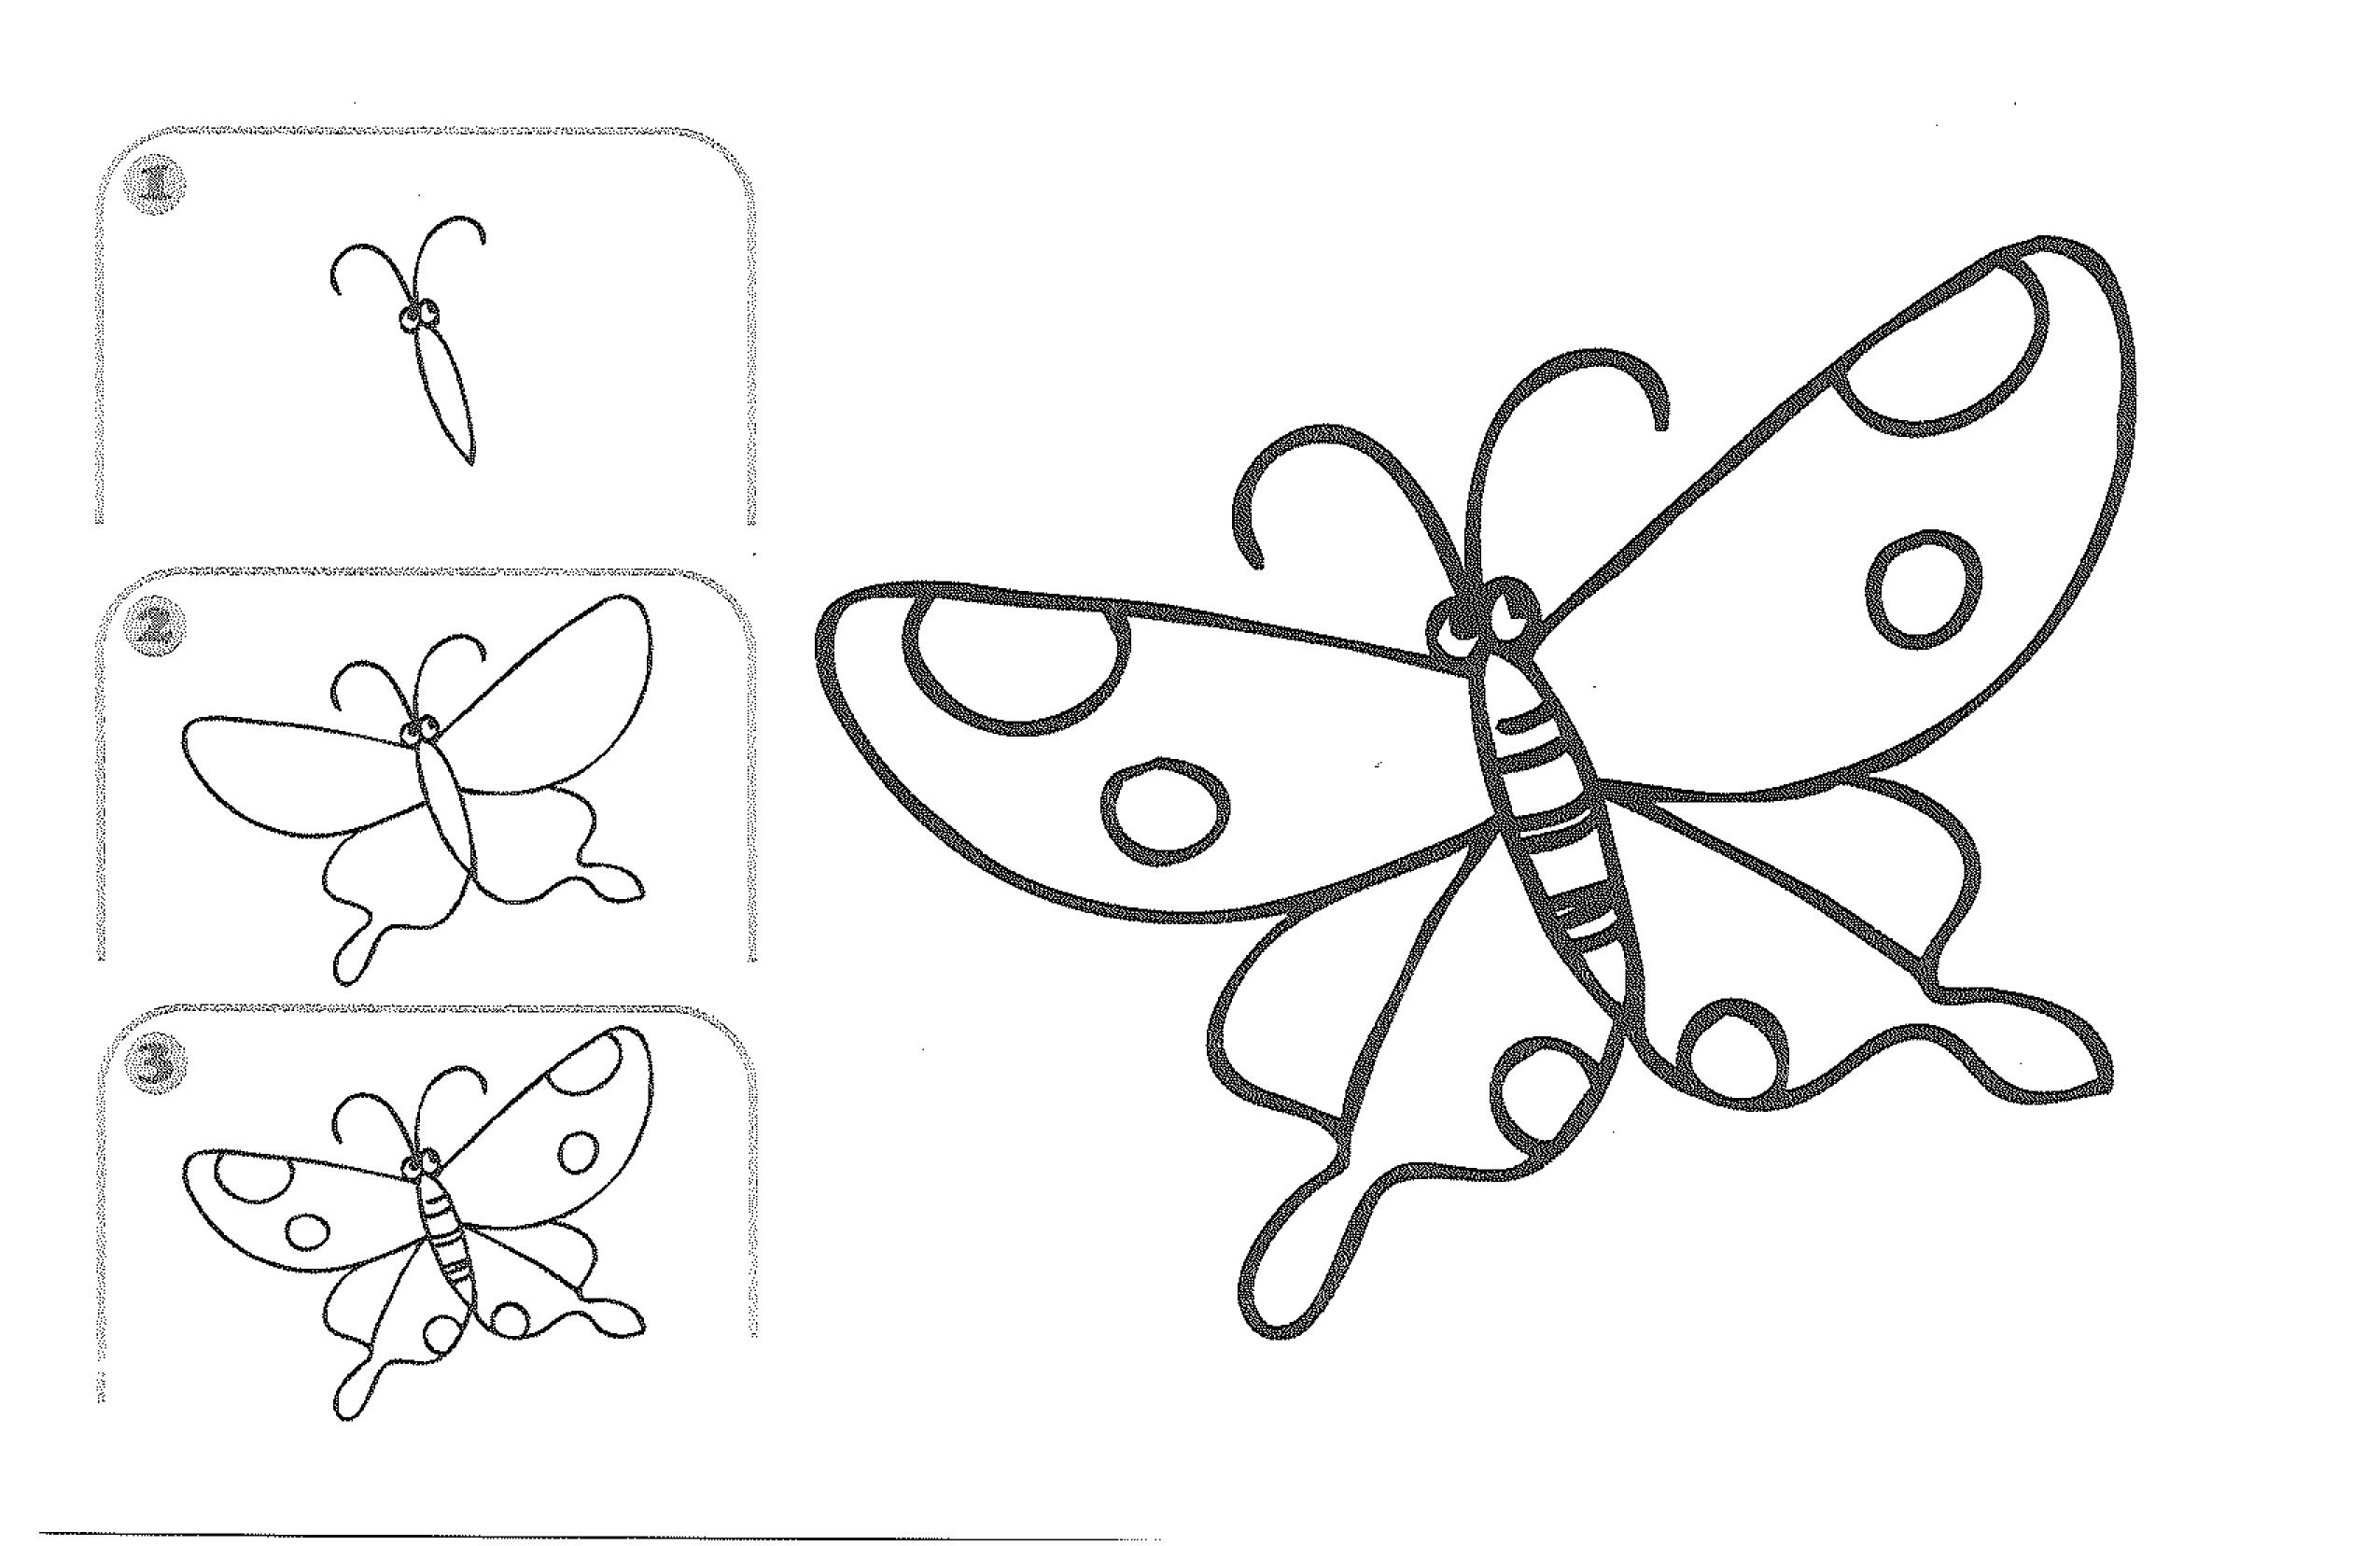 drawings by kids kids learn to draw insects teaching kids drawing free printable - Images For Drawing For Kids